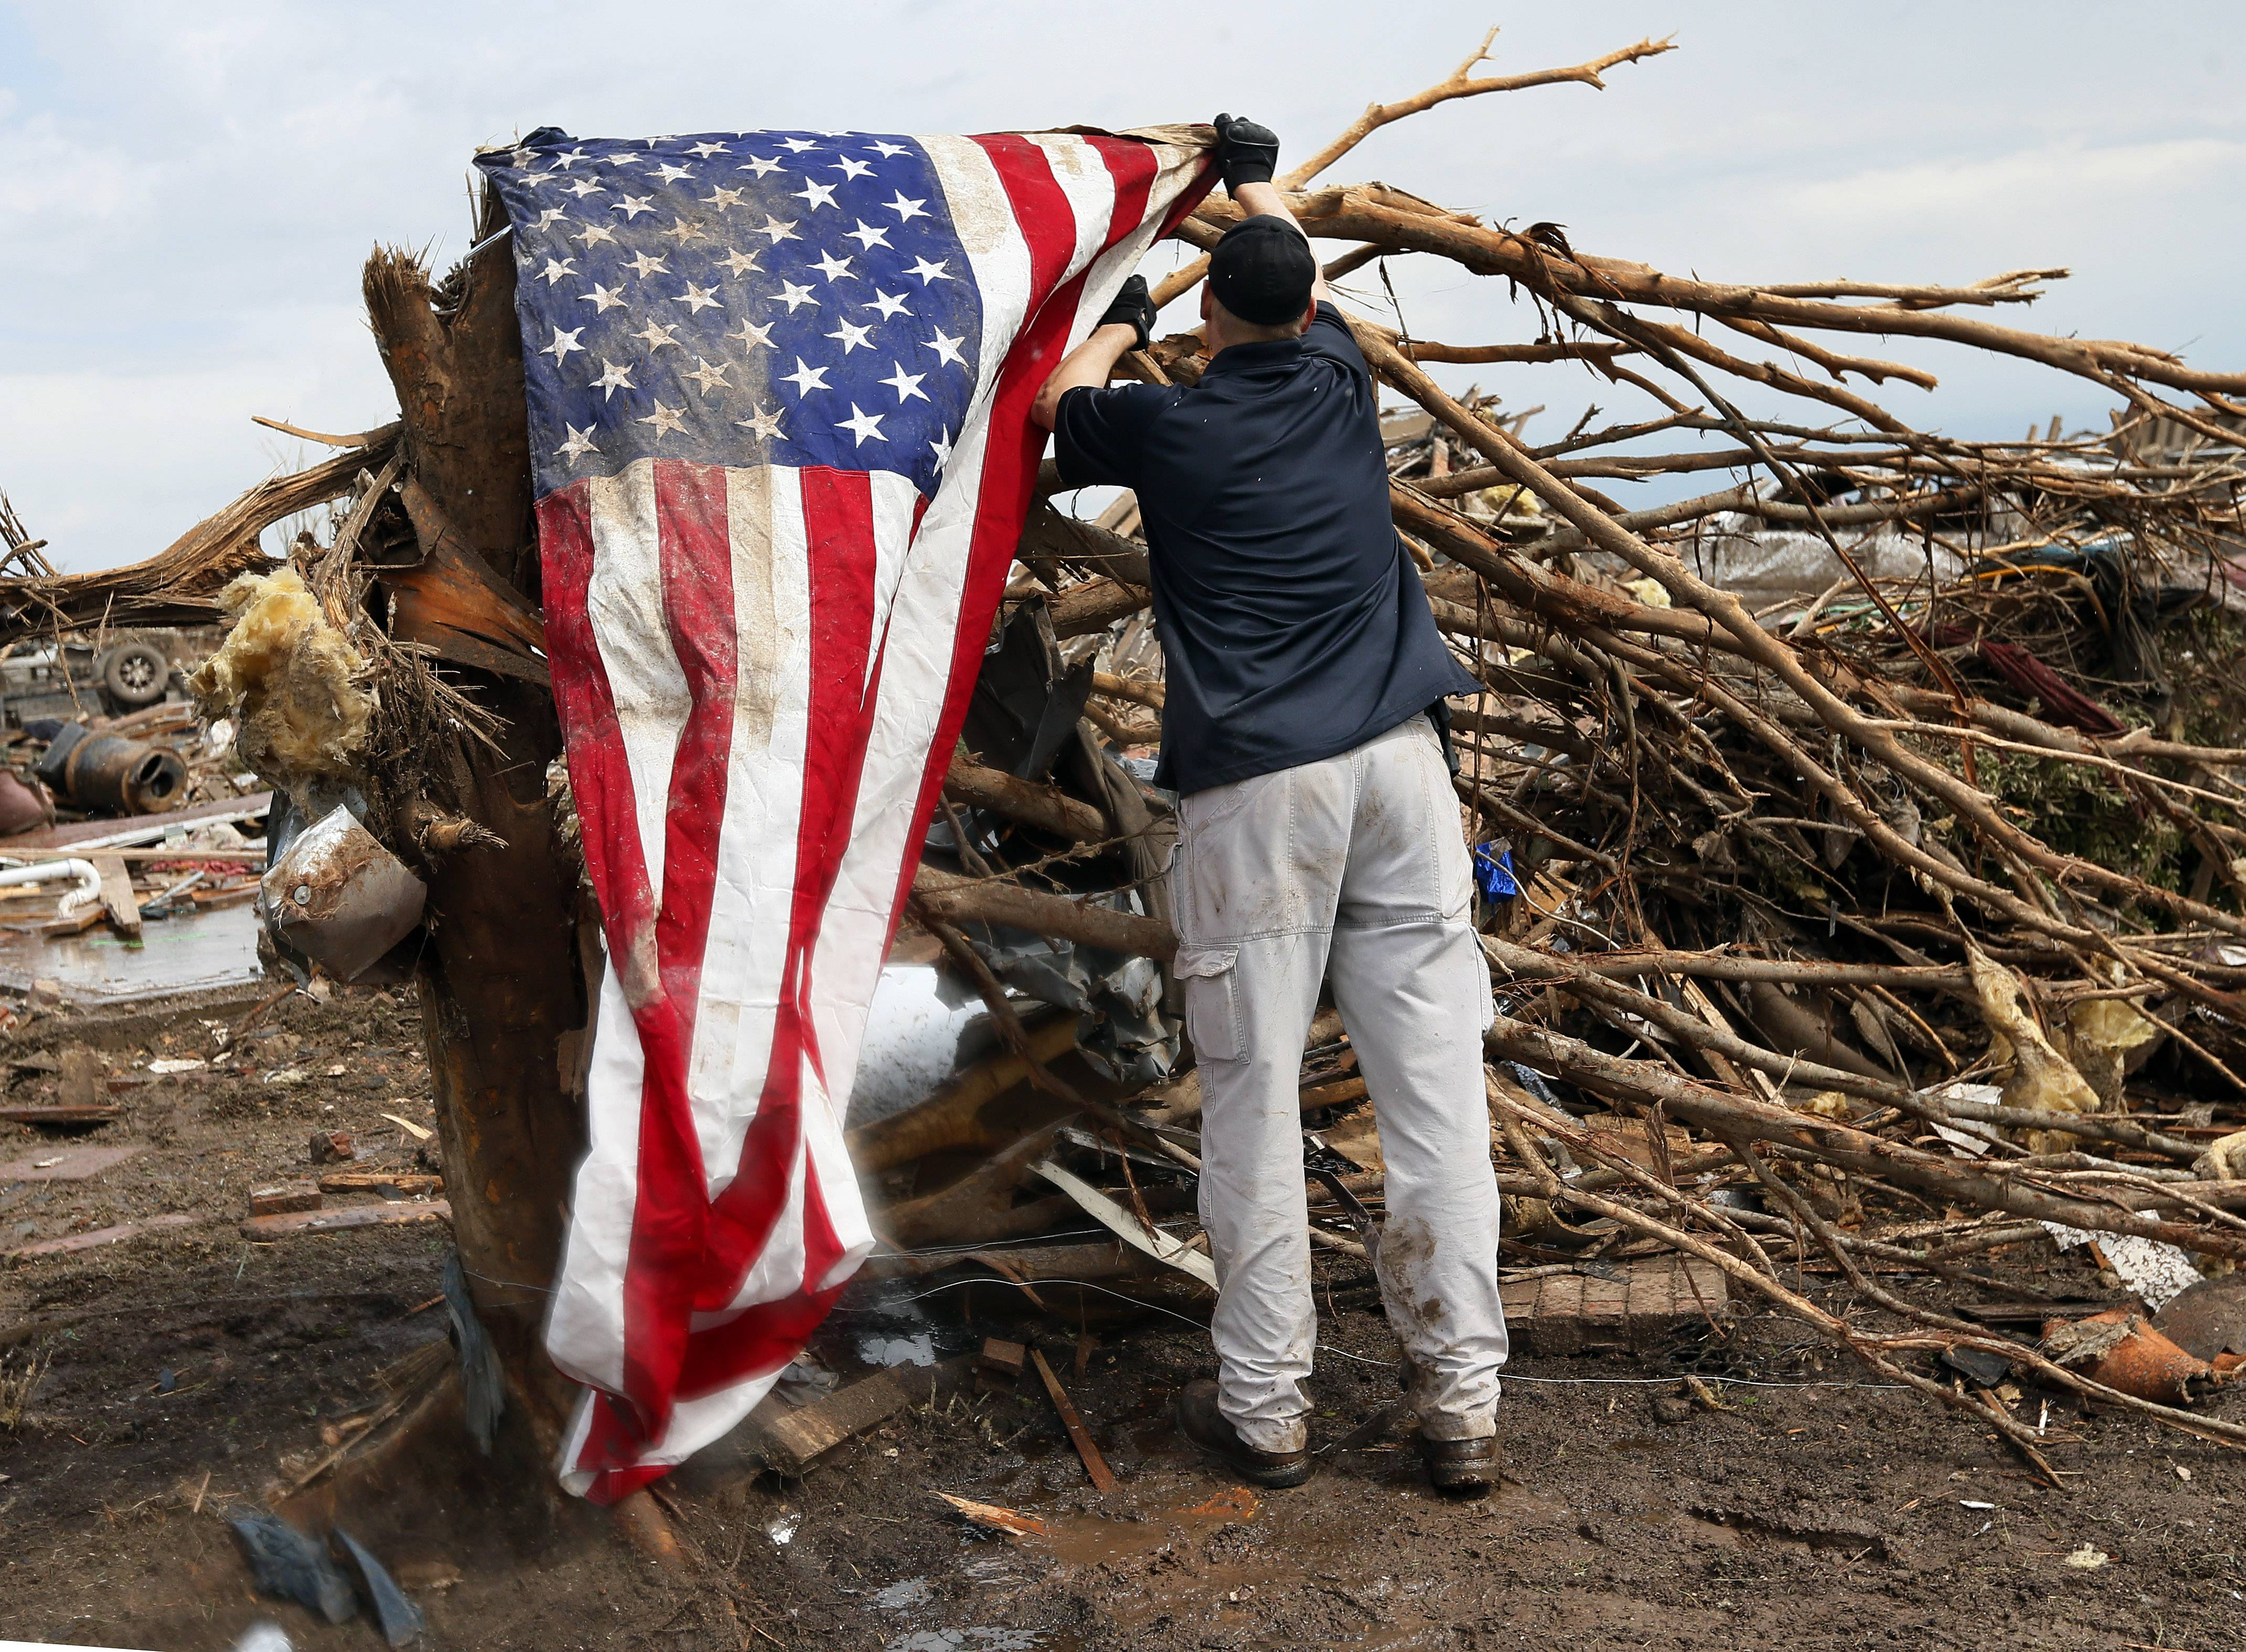 A man who asked not to be identified hangs an American flag on what is left of a tree in a neighborhood north of SW 149th between Western and Santa Fe on Tuesday, May 21, 2013, after a tornado struck south Oklahoma City and Moore, Okla., on Monday.